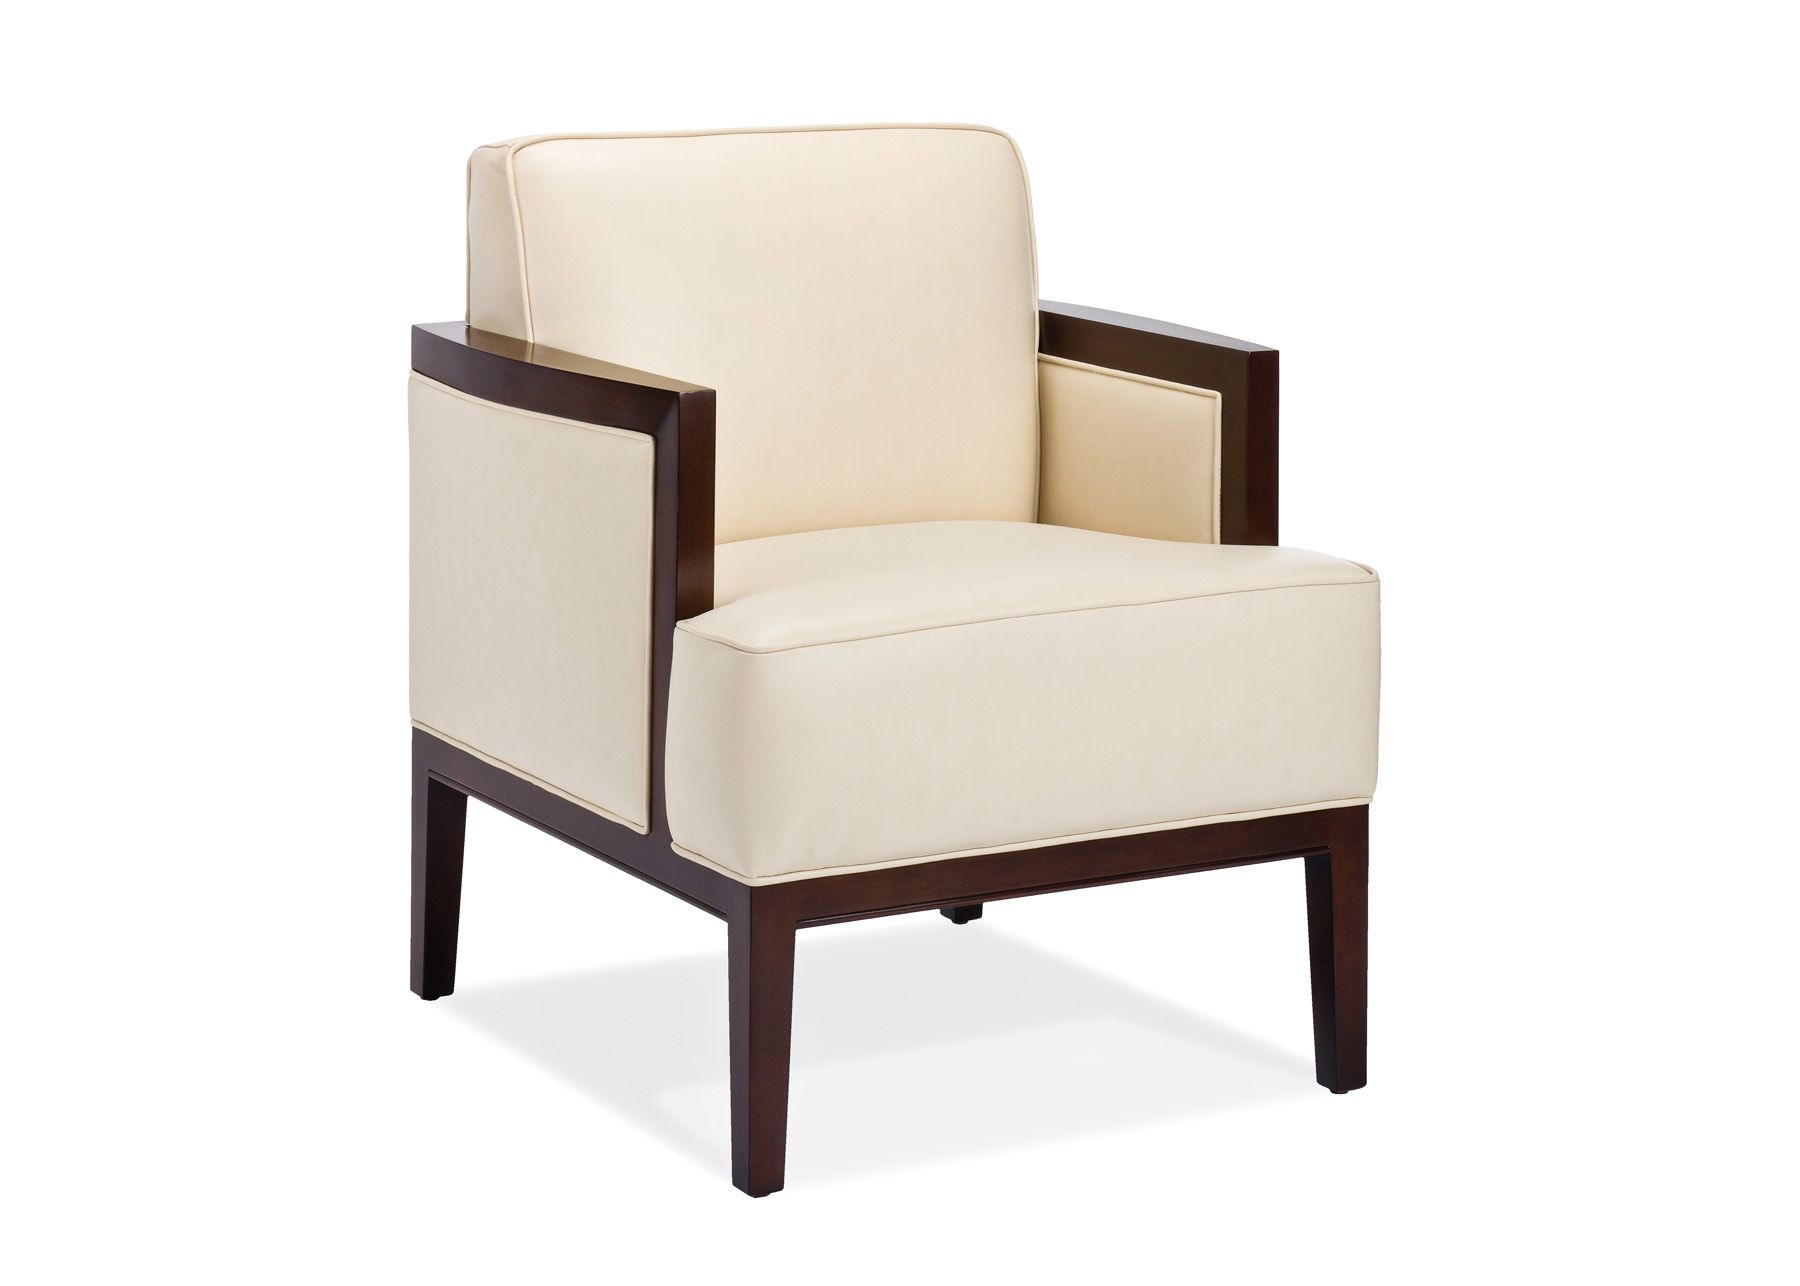 Love Sofa Moooi Cabot Wrenn. Sage. Chair, Sofa, Lounge, Bench | Chairs